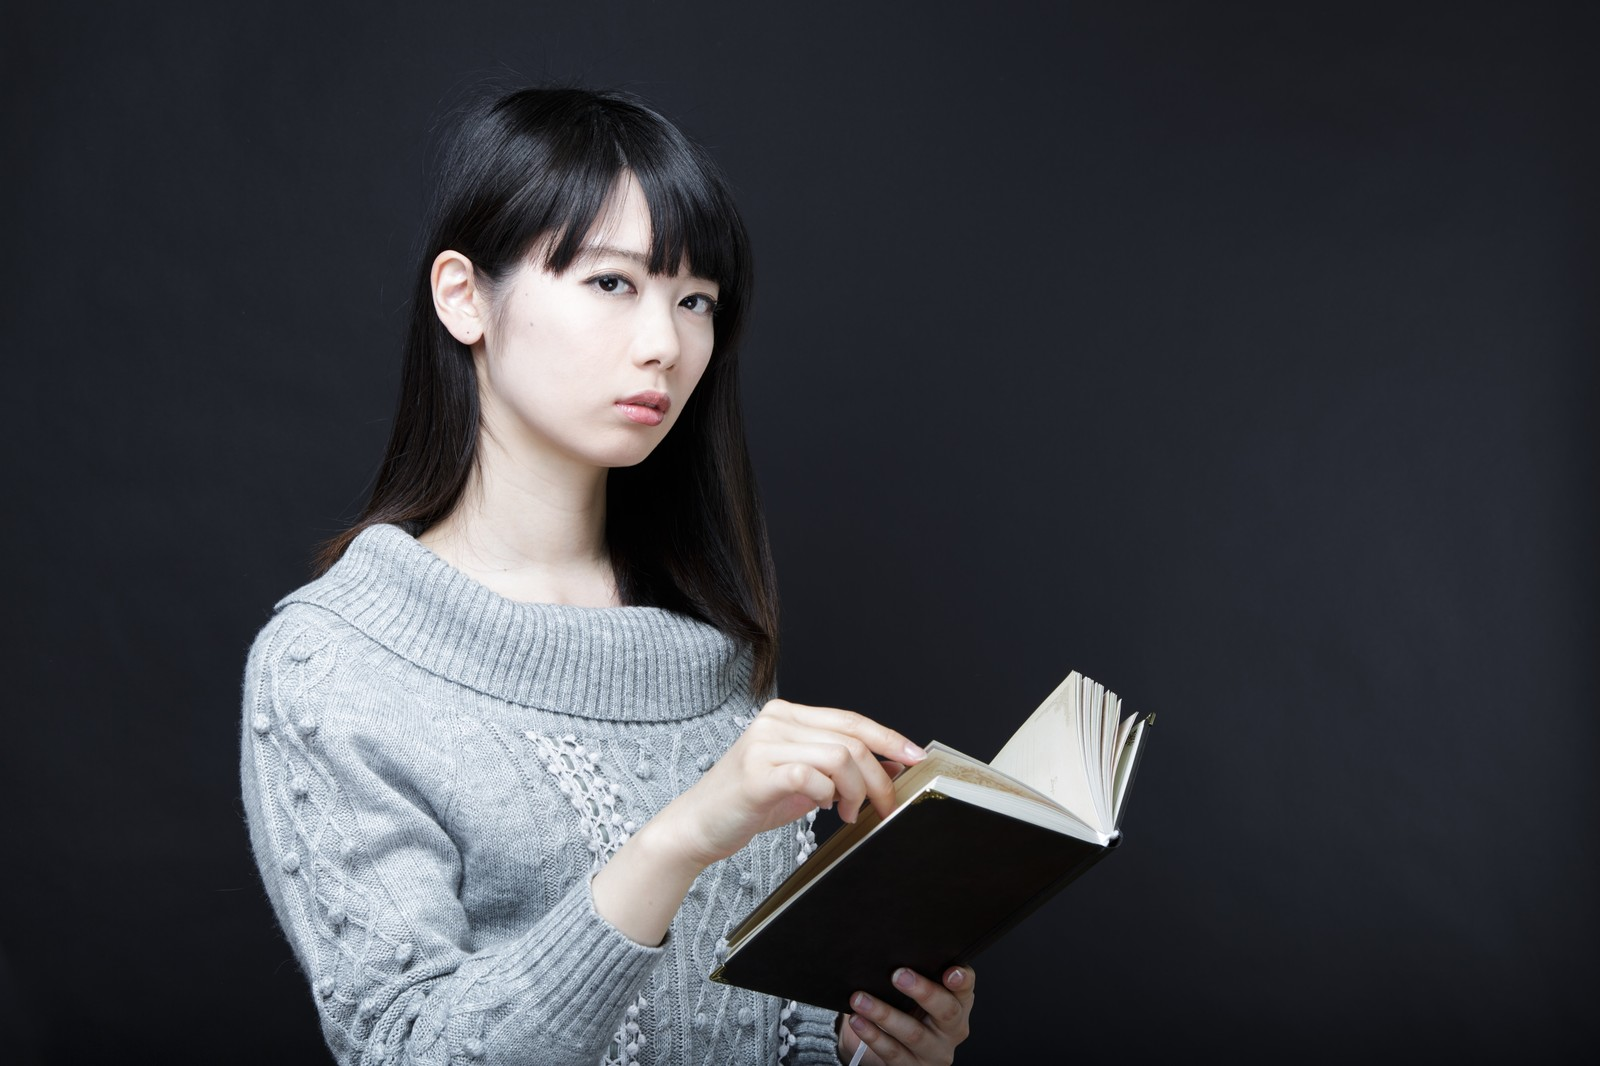 to不定詞の形容詞の限定用法